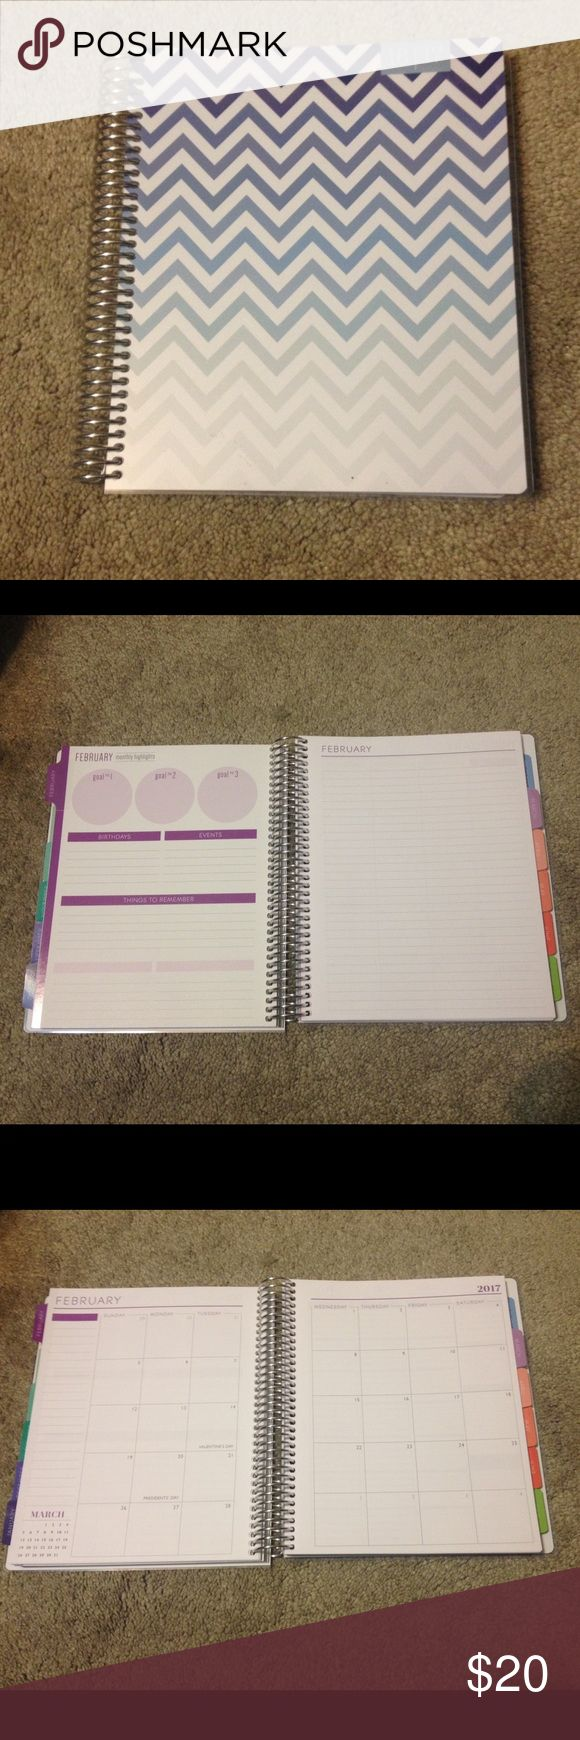 2016-2017 New Academic Planner Never before used planner Other